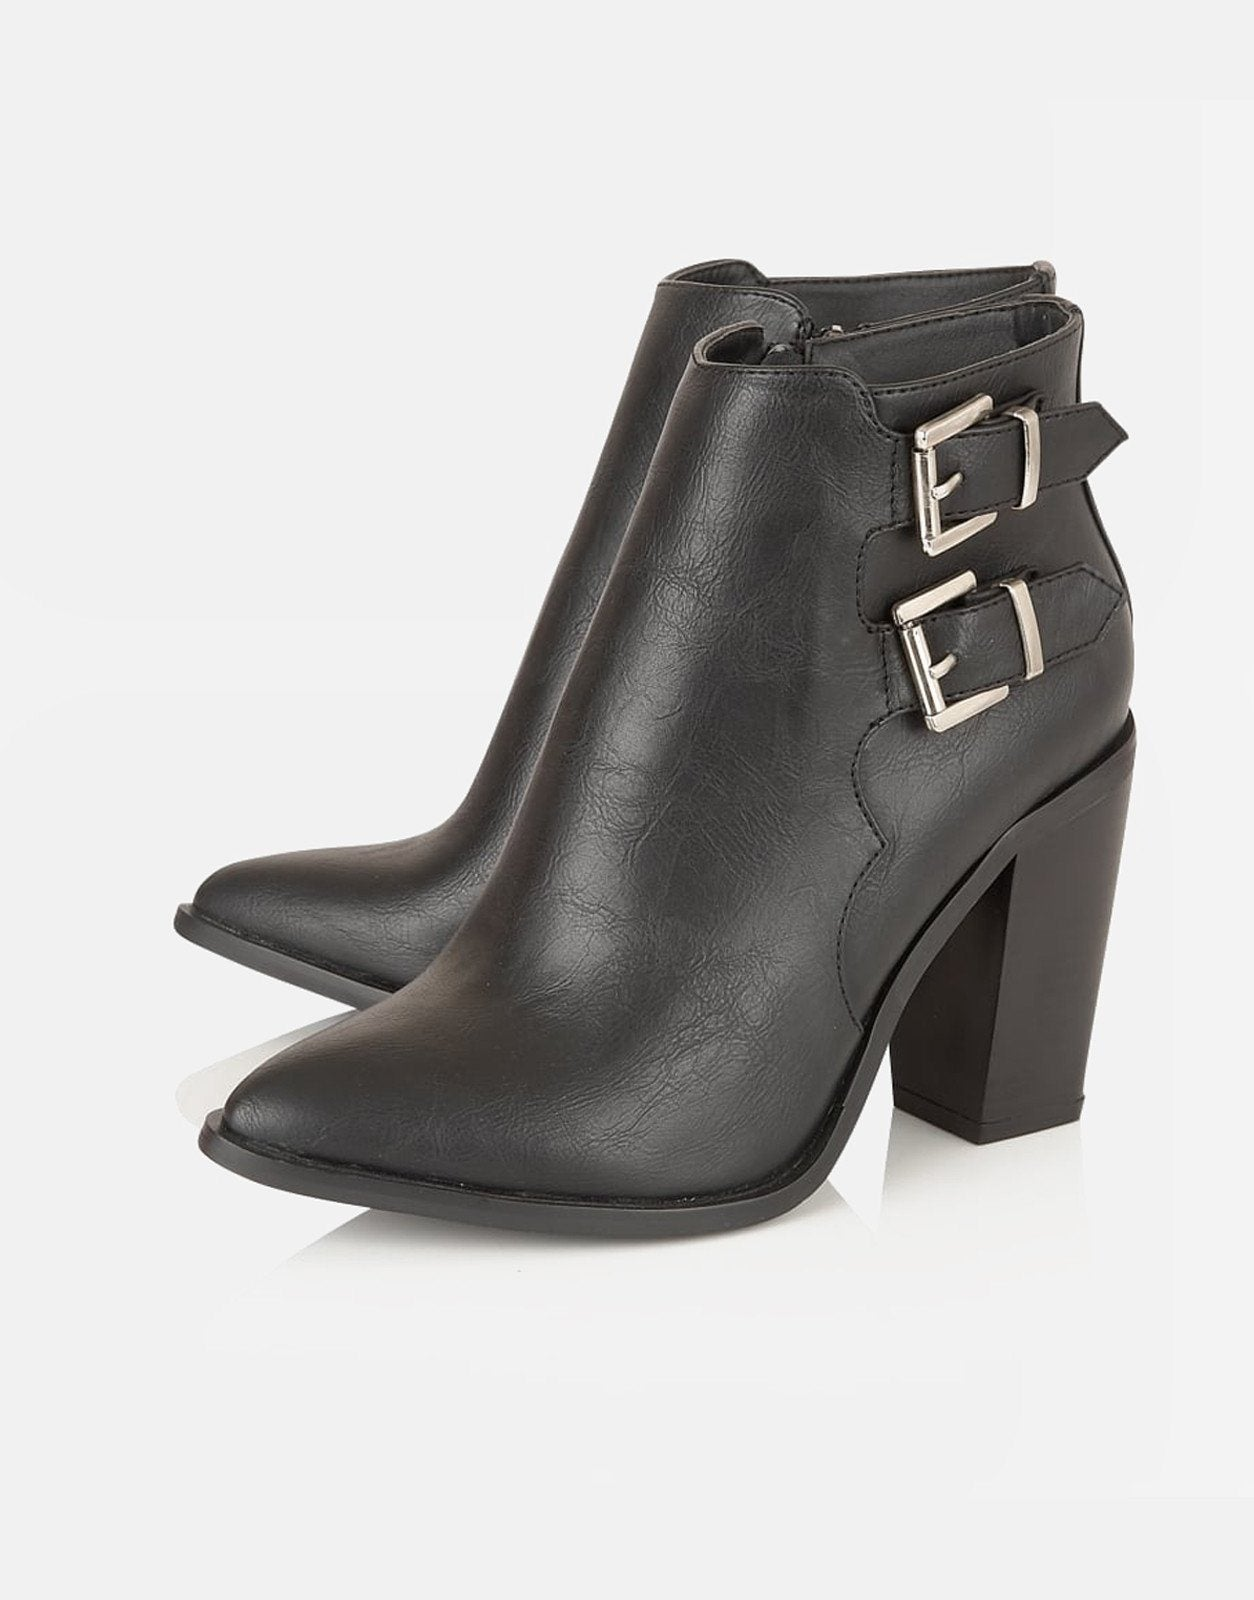 Dolcis Dolcis Santana Buckle Ankle Black Boots  Subwear